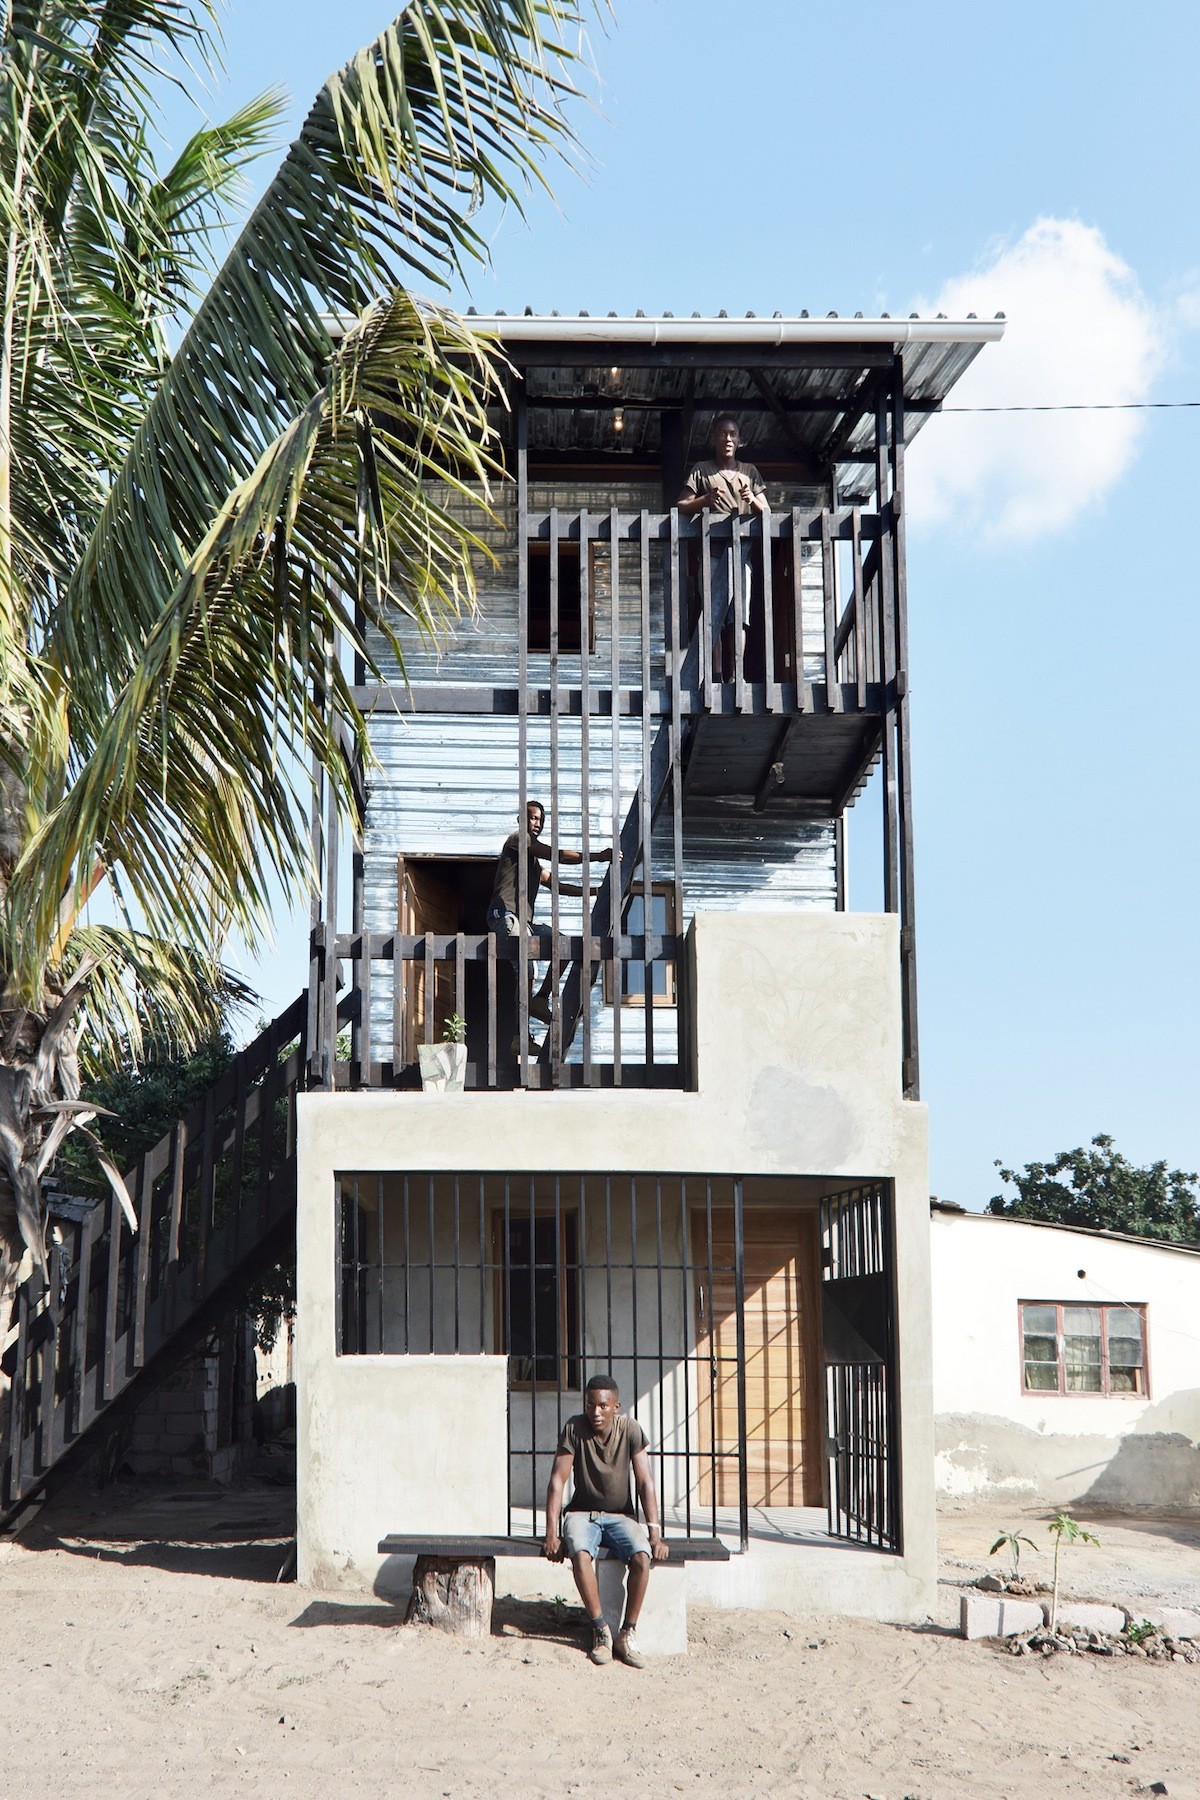 Low cost house in mozambique features corrugated iron and for Arredamenti low cost